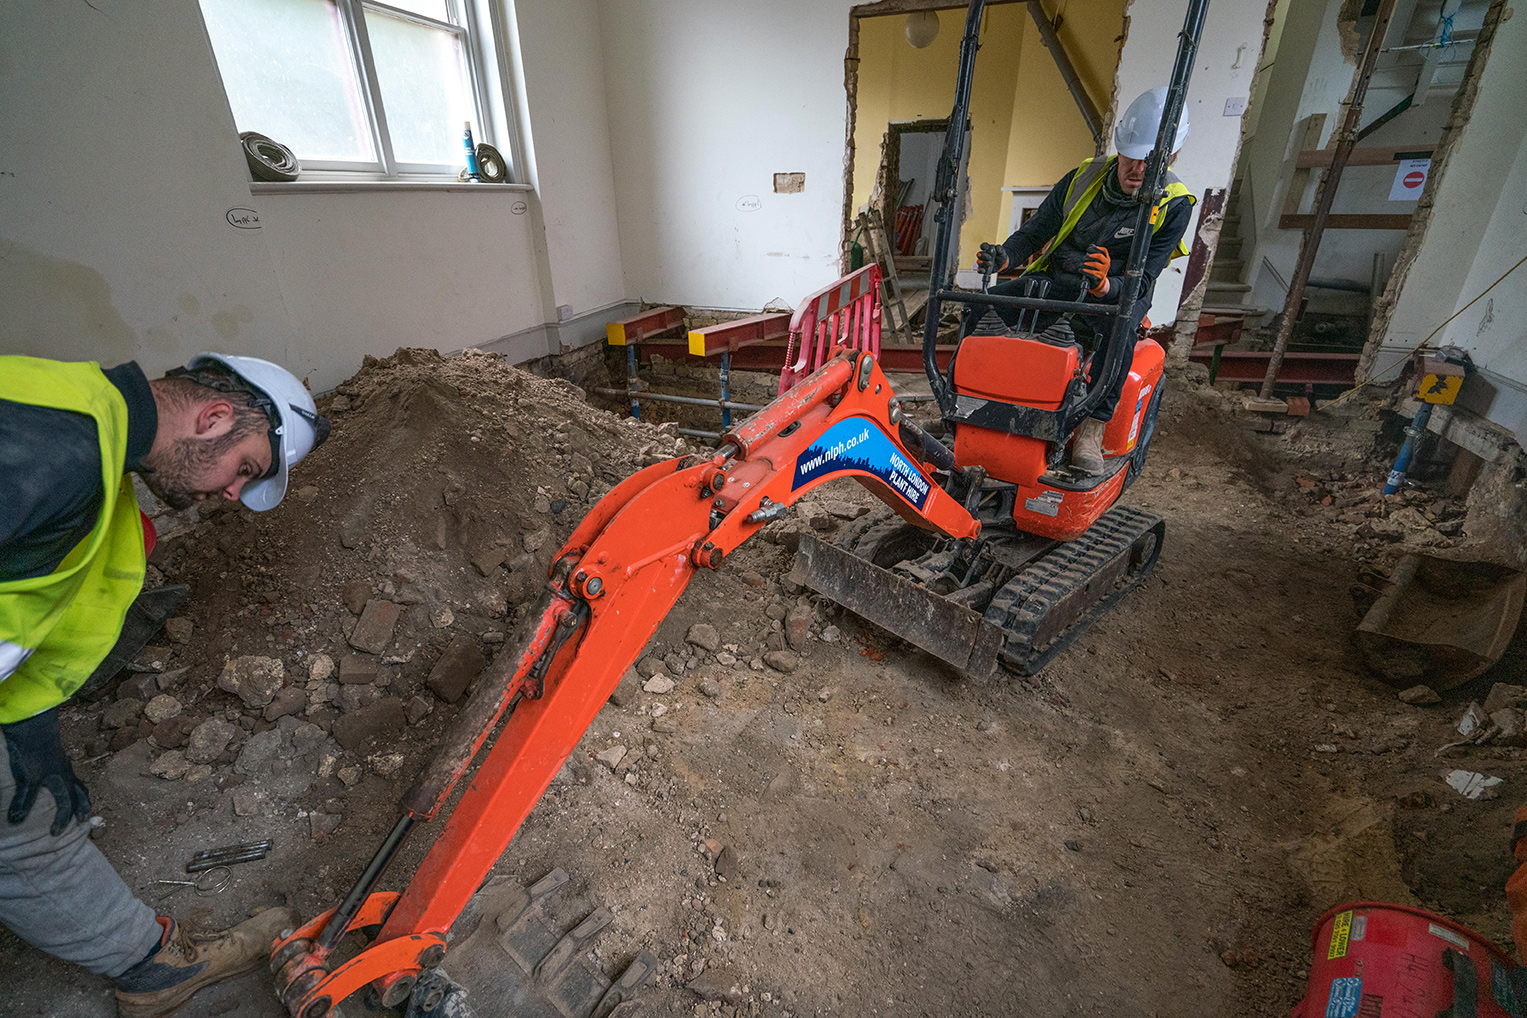 One of the digging team tightens up the action on the neck of the digger